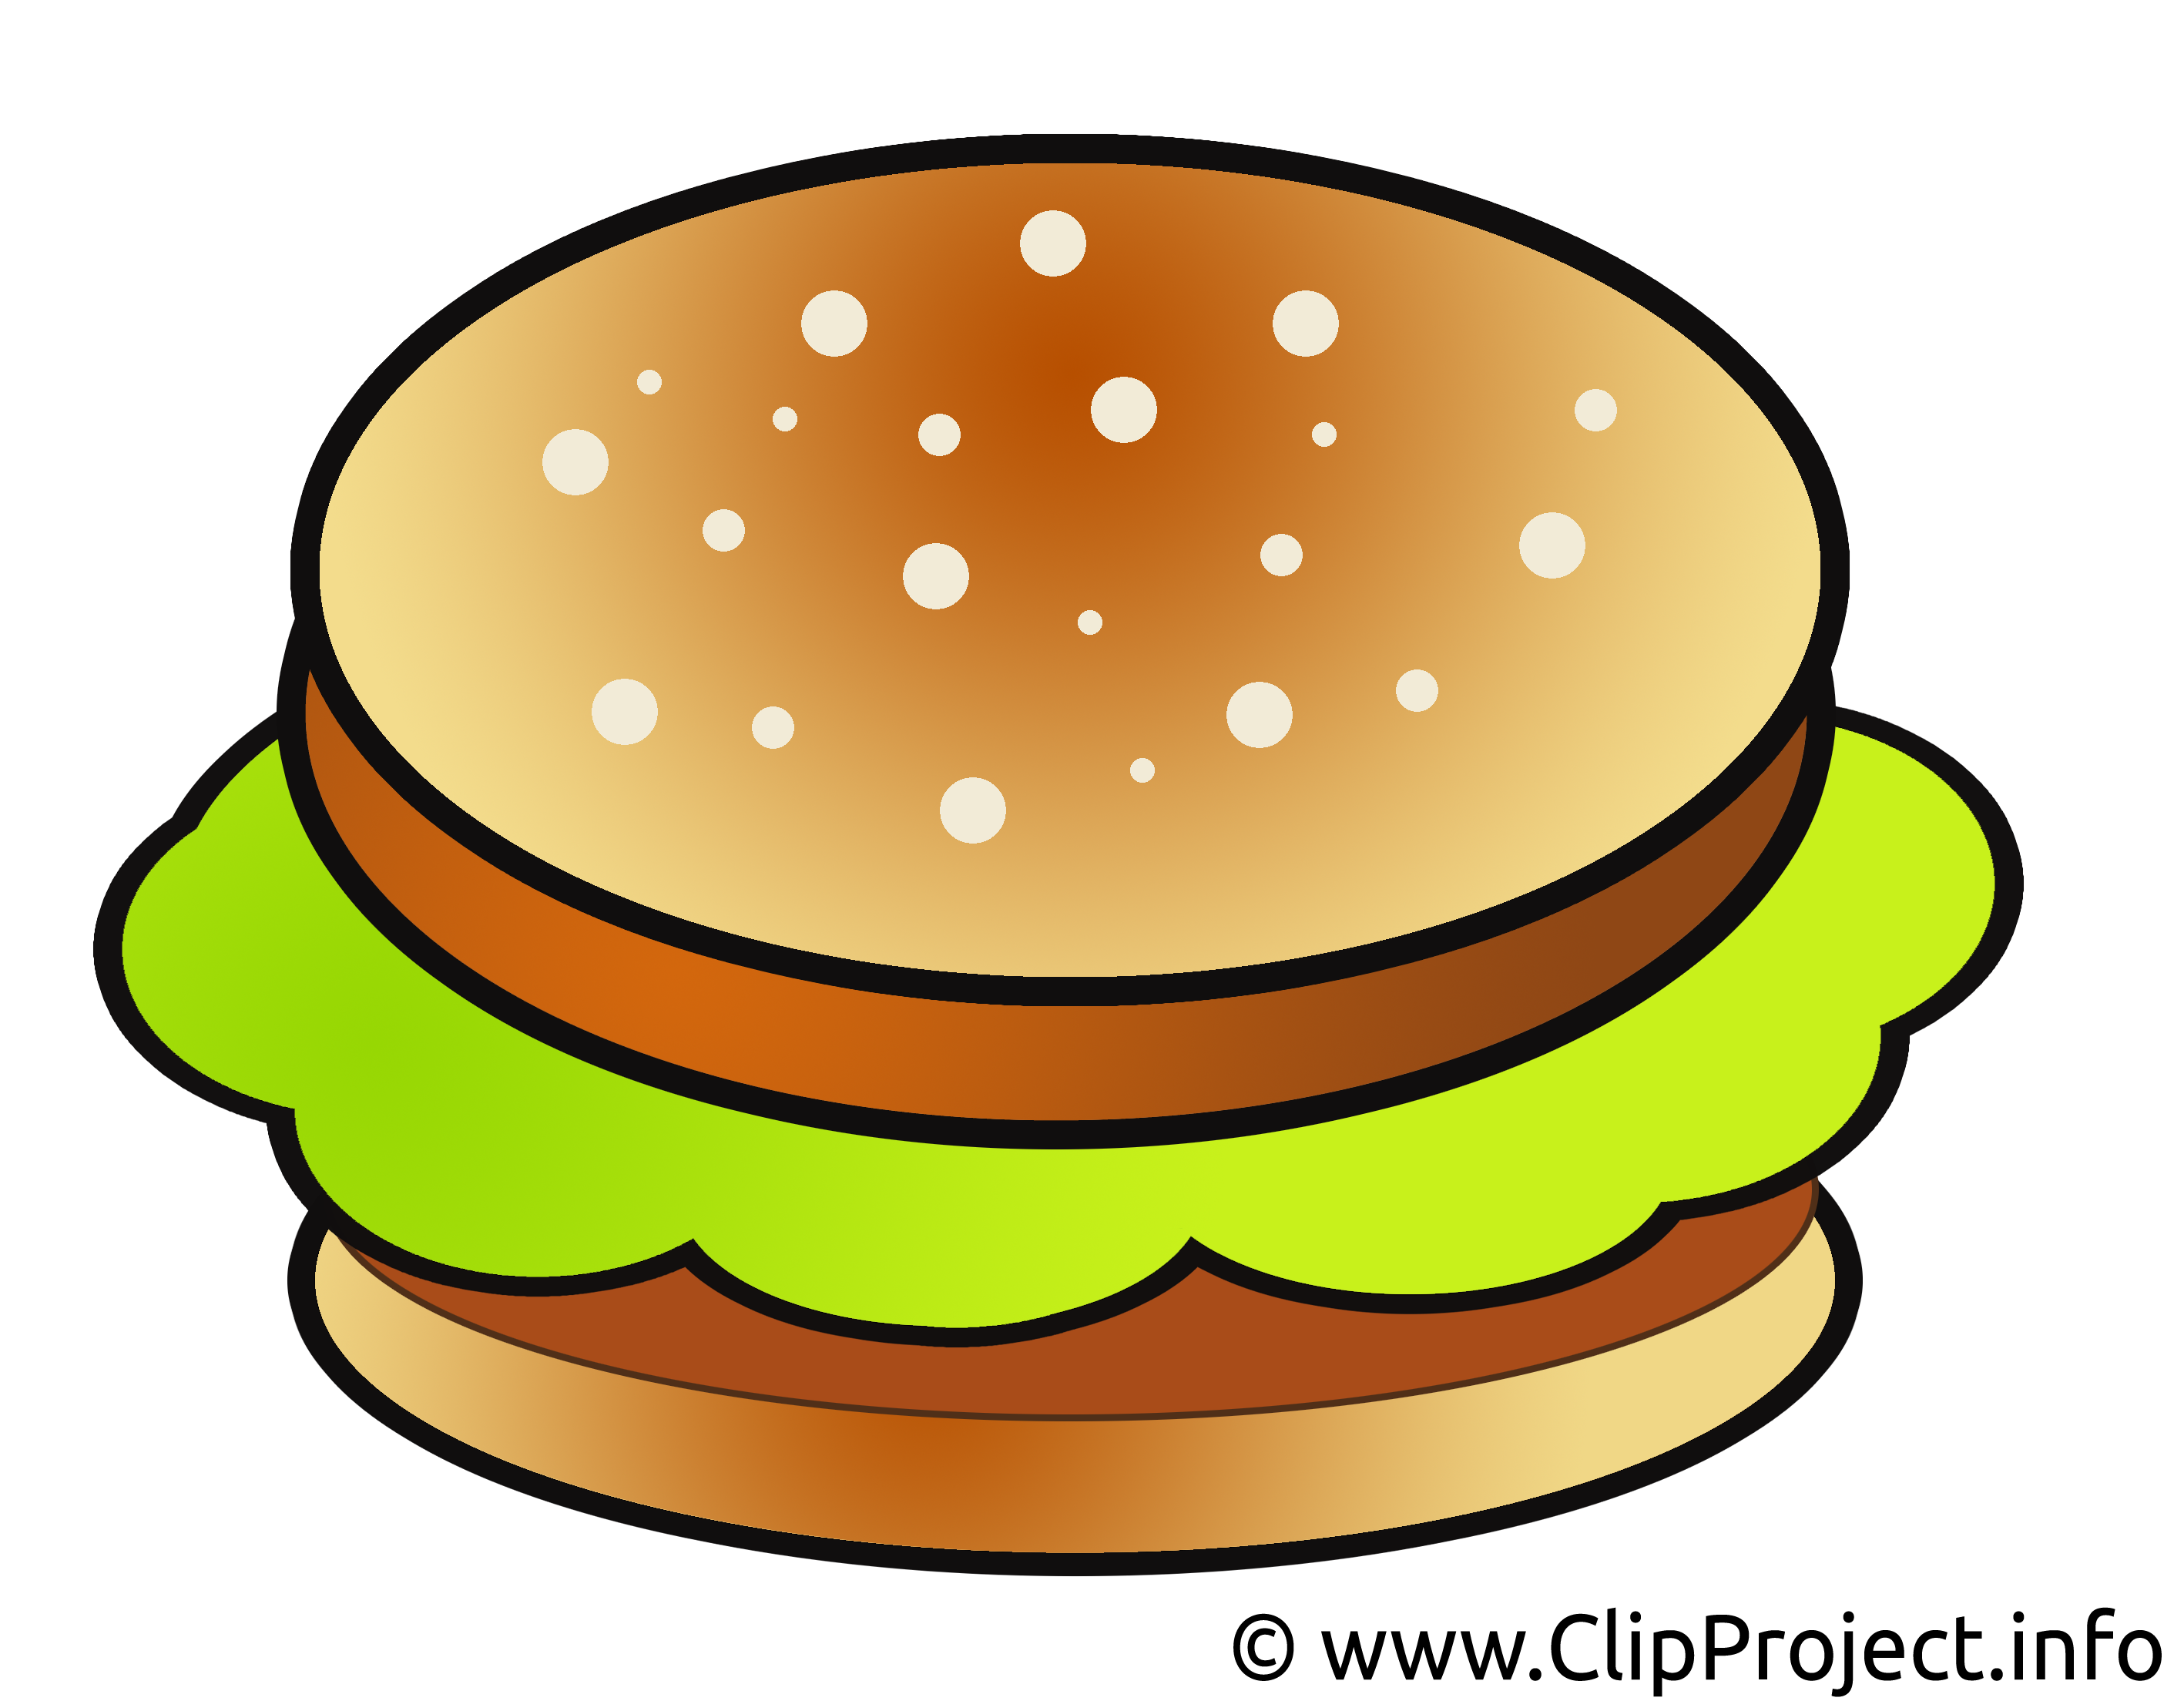 Hamburger clip arts - Nourriture illustrations